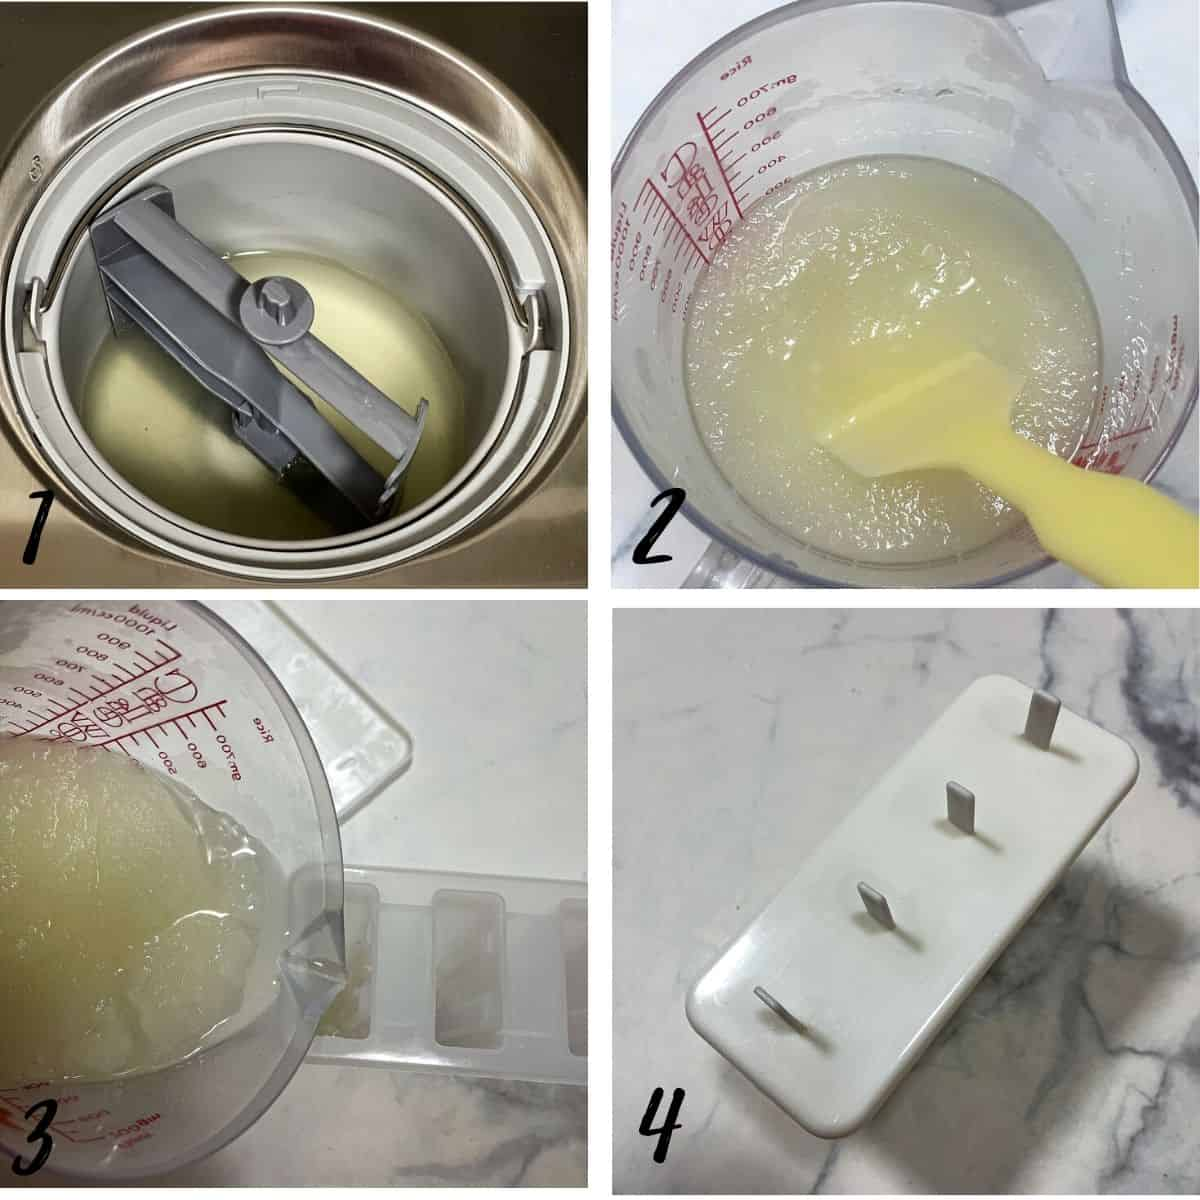 A poster of 4 images showing how to churn lemonade before pouring into popsicle mold